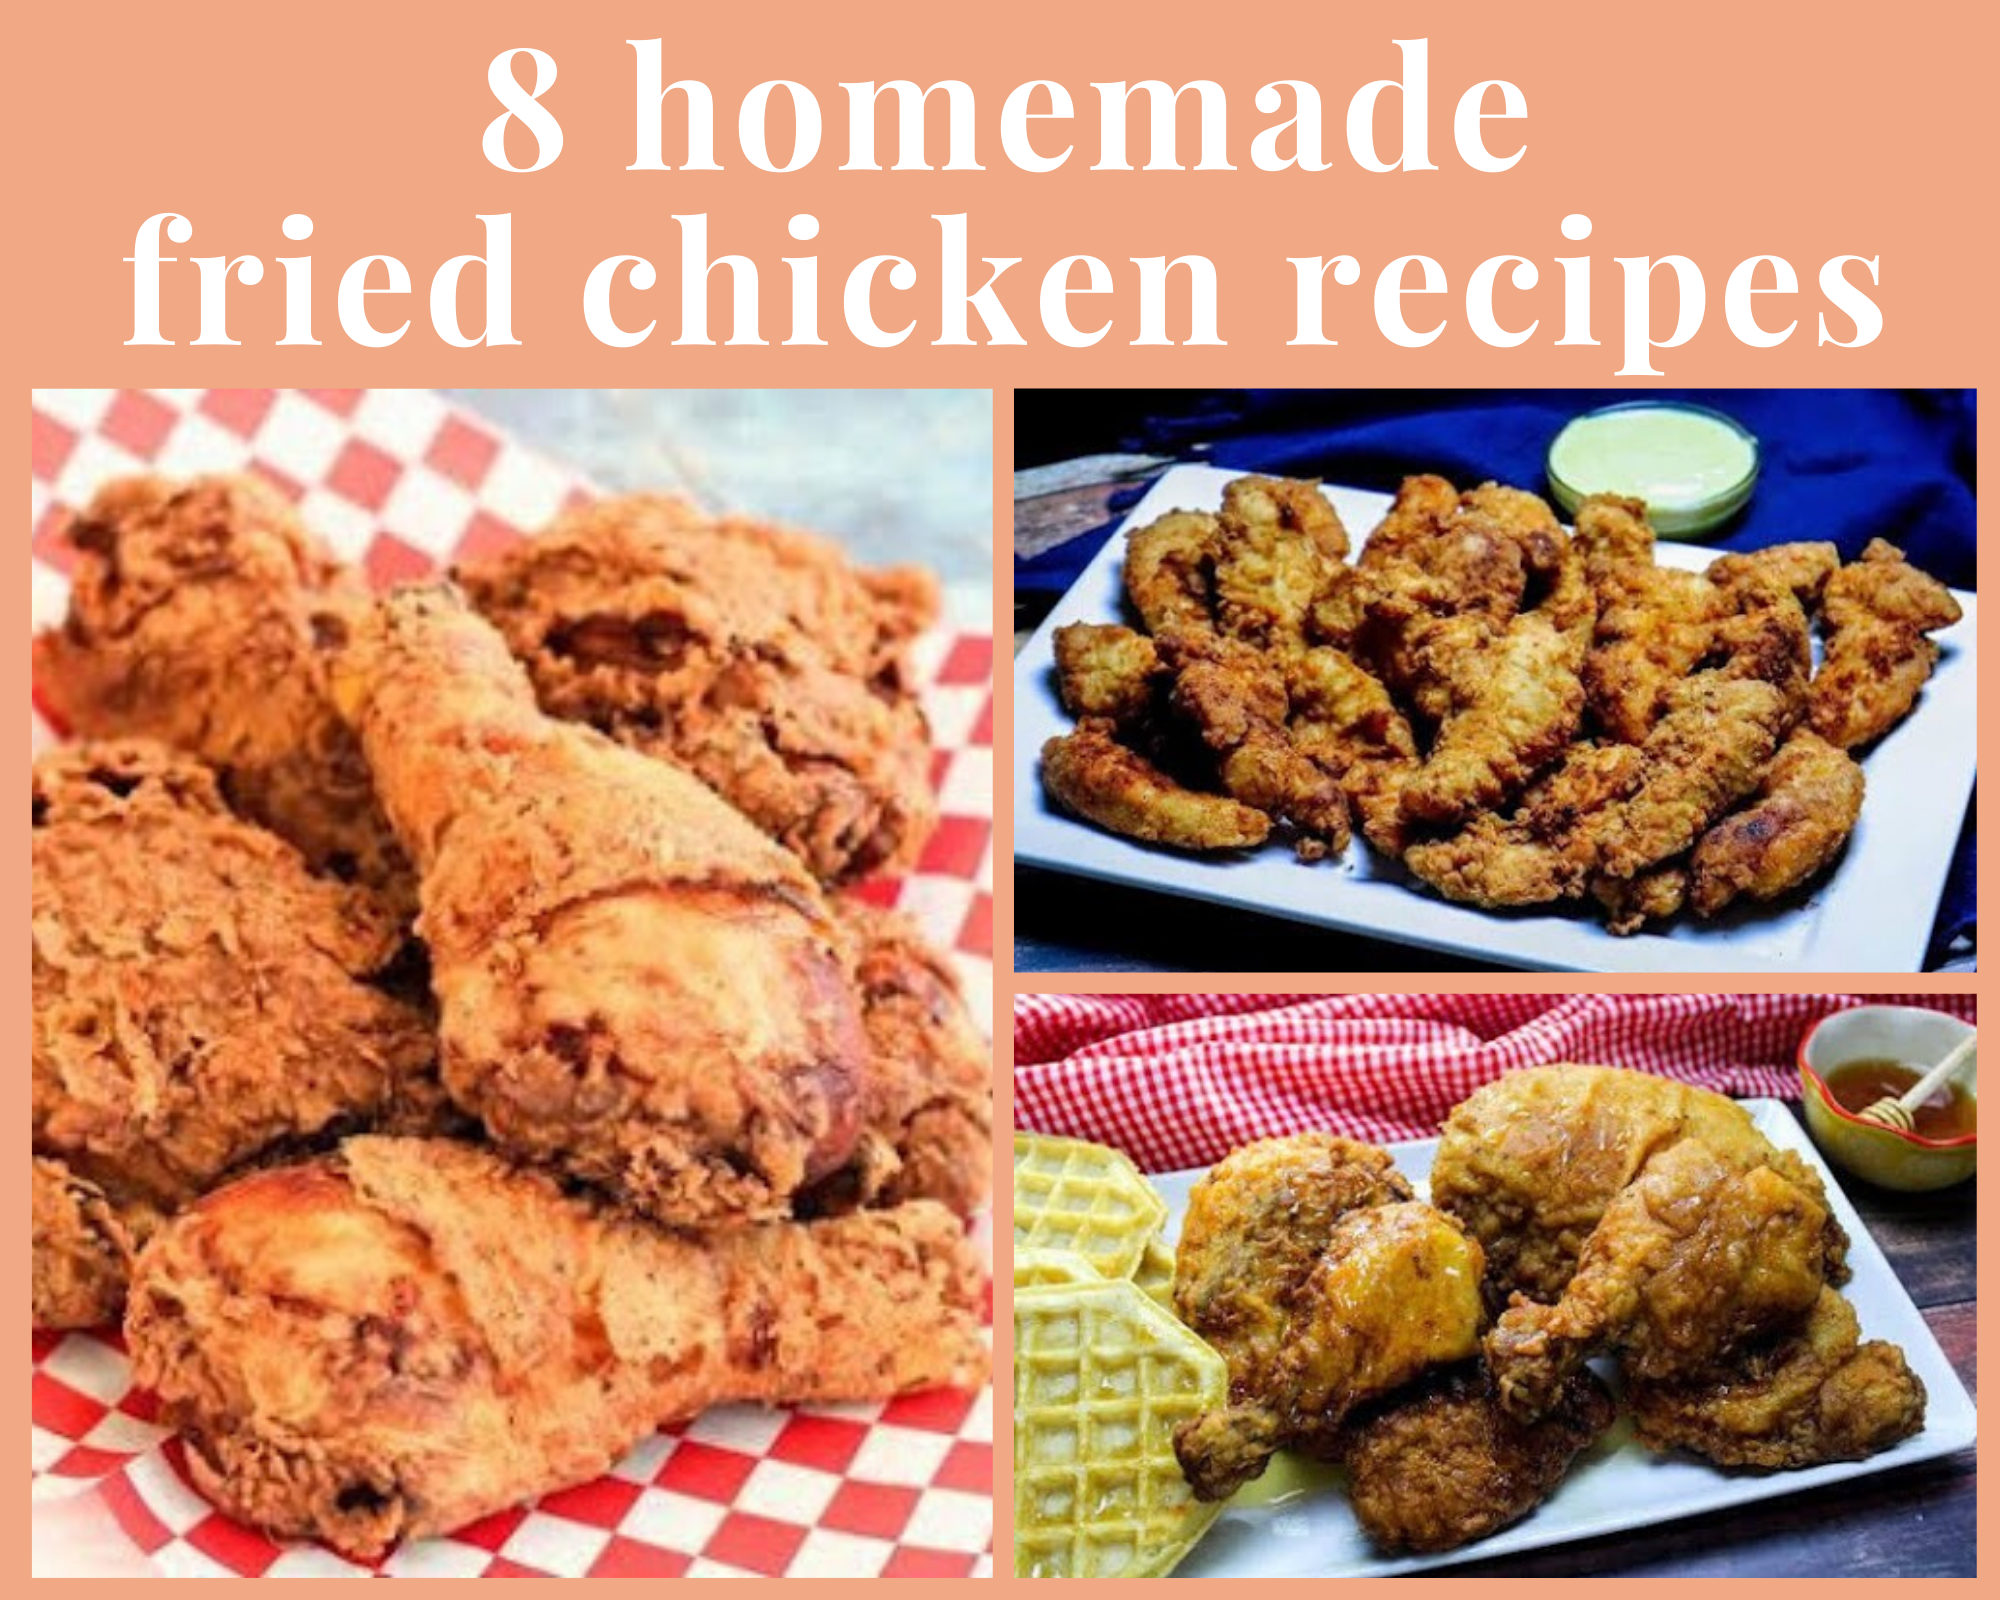 Homemade fried chicken and chicken tenders